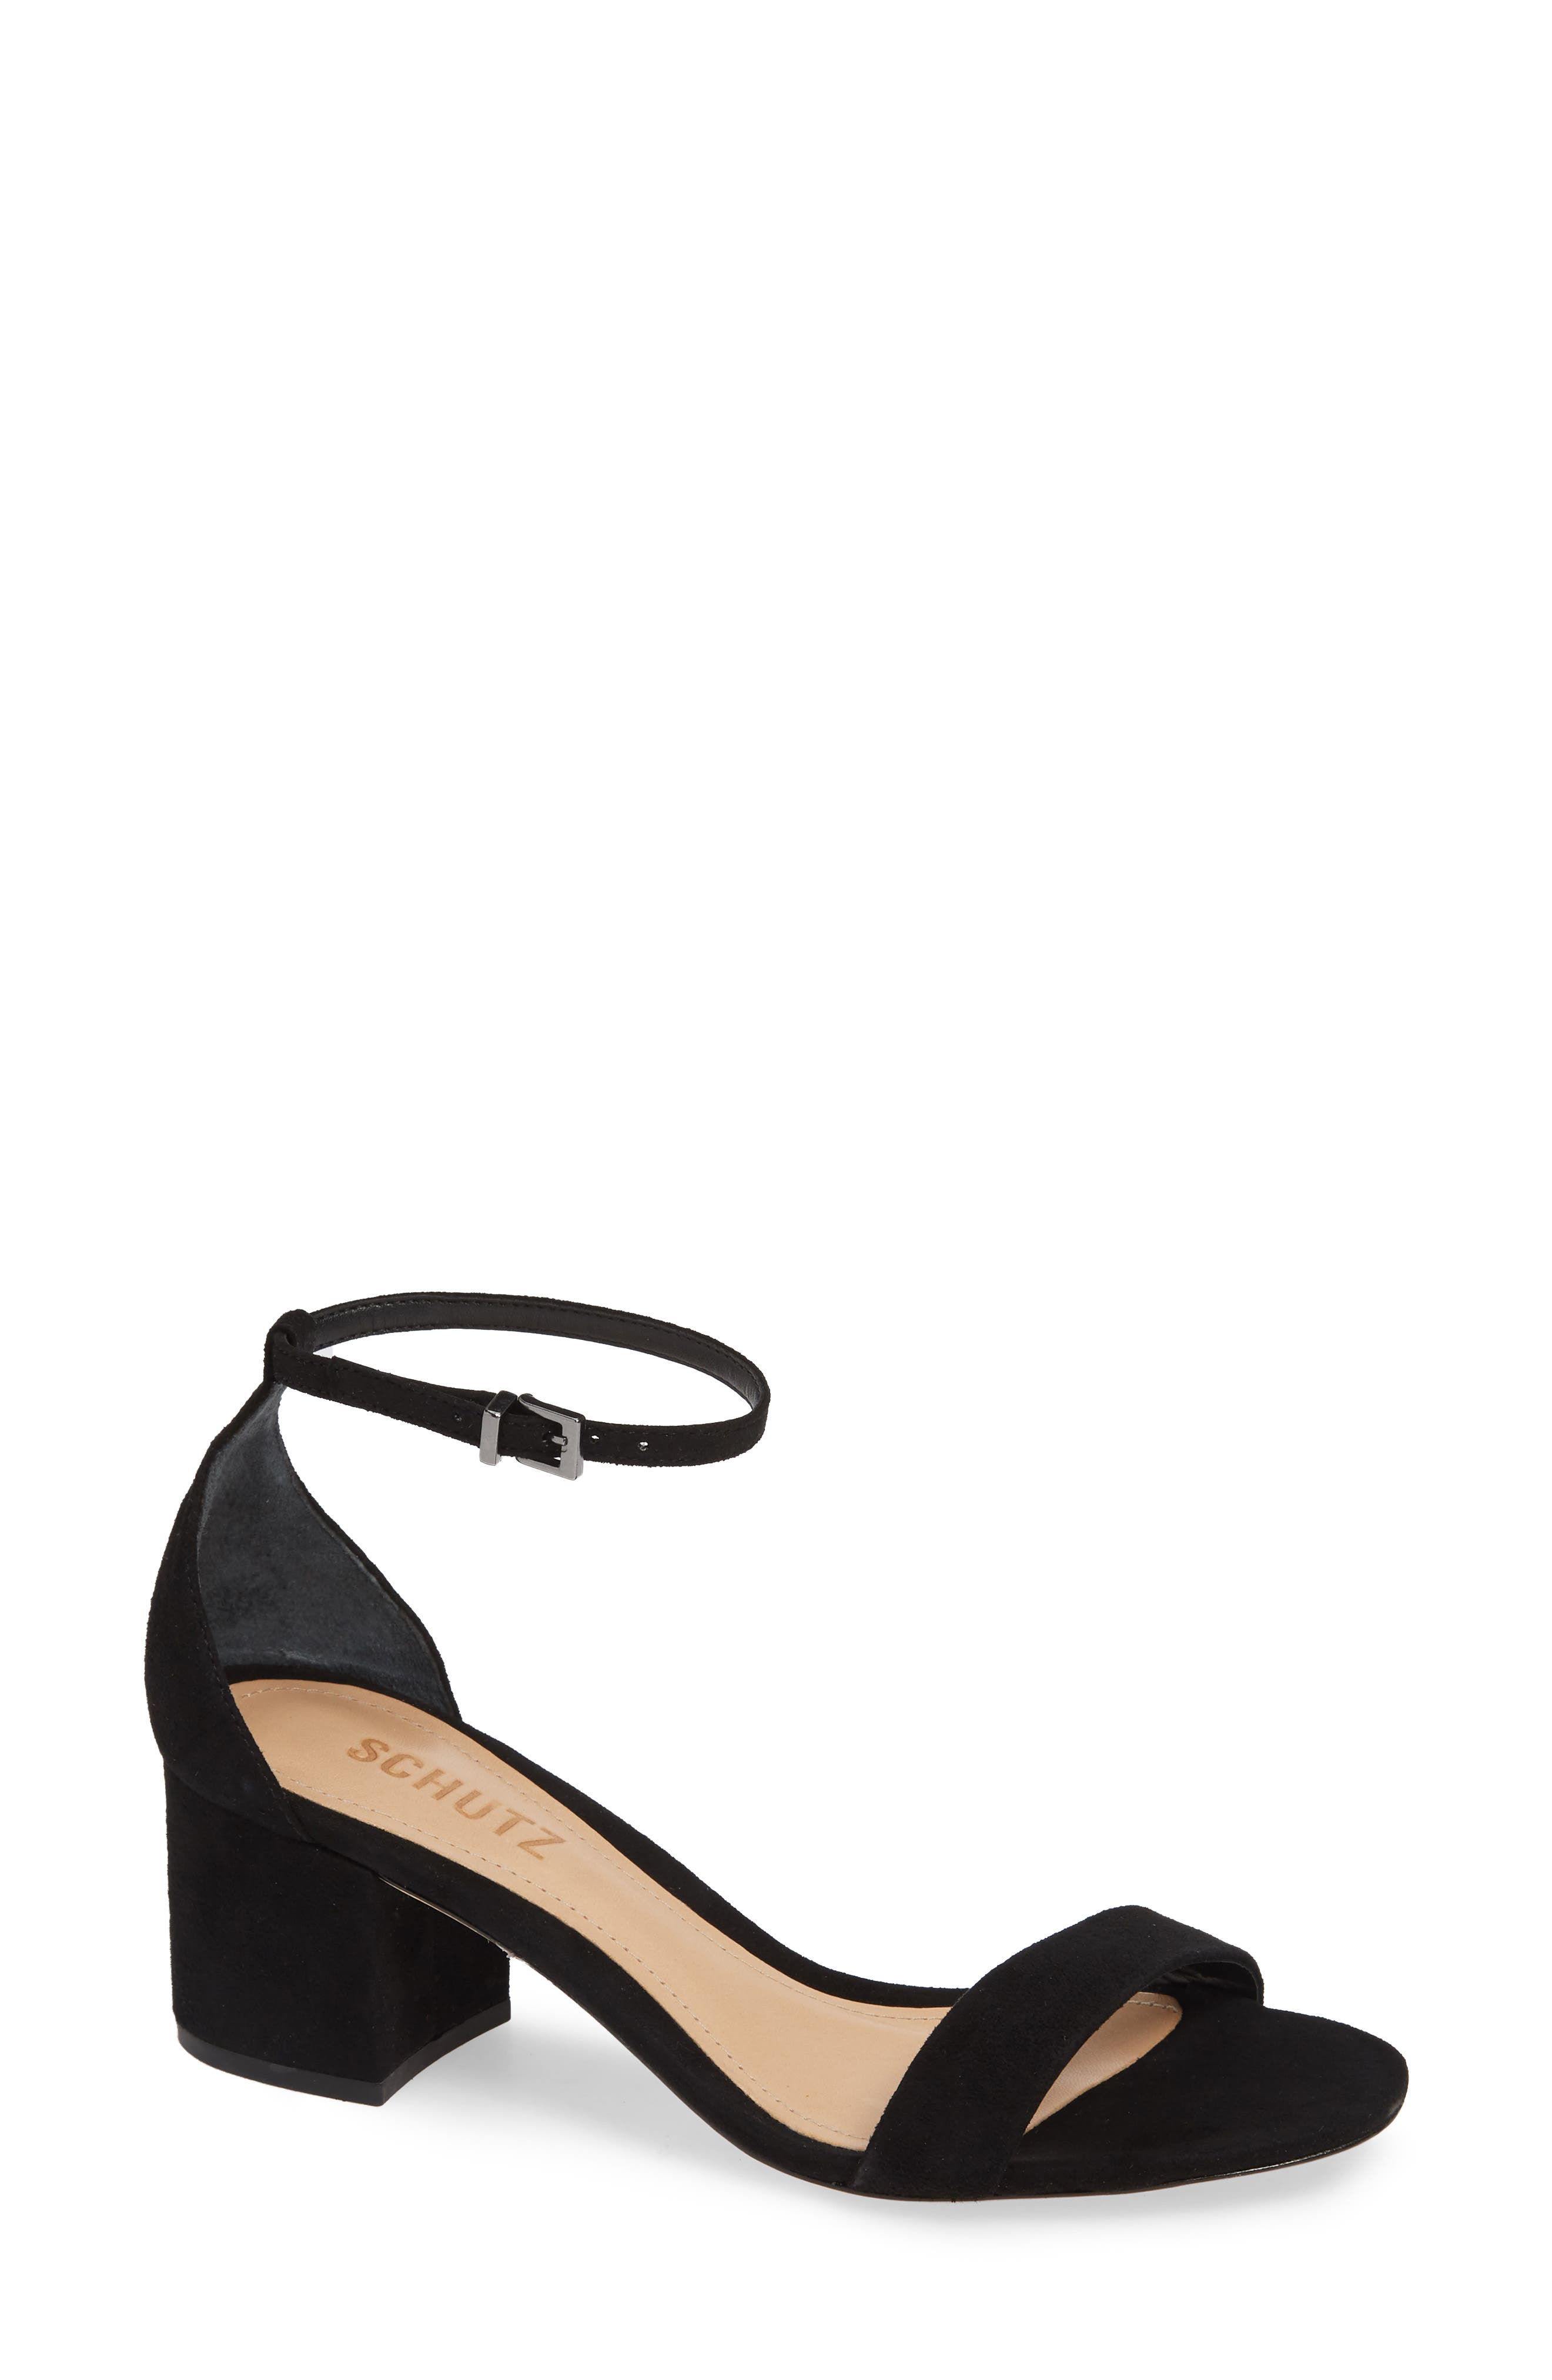 Chimes Ankle Strap Sandal,                         Main,                         color, 001